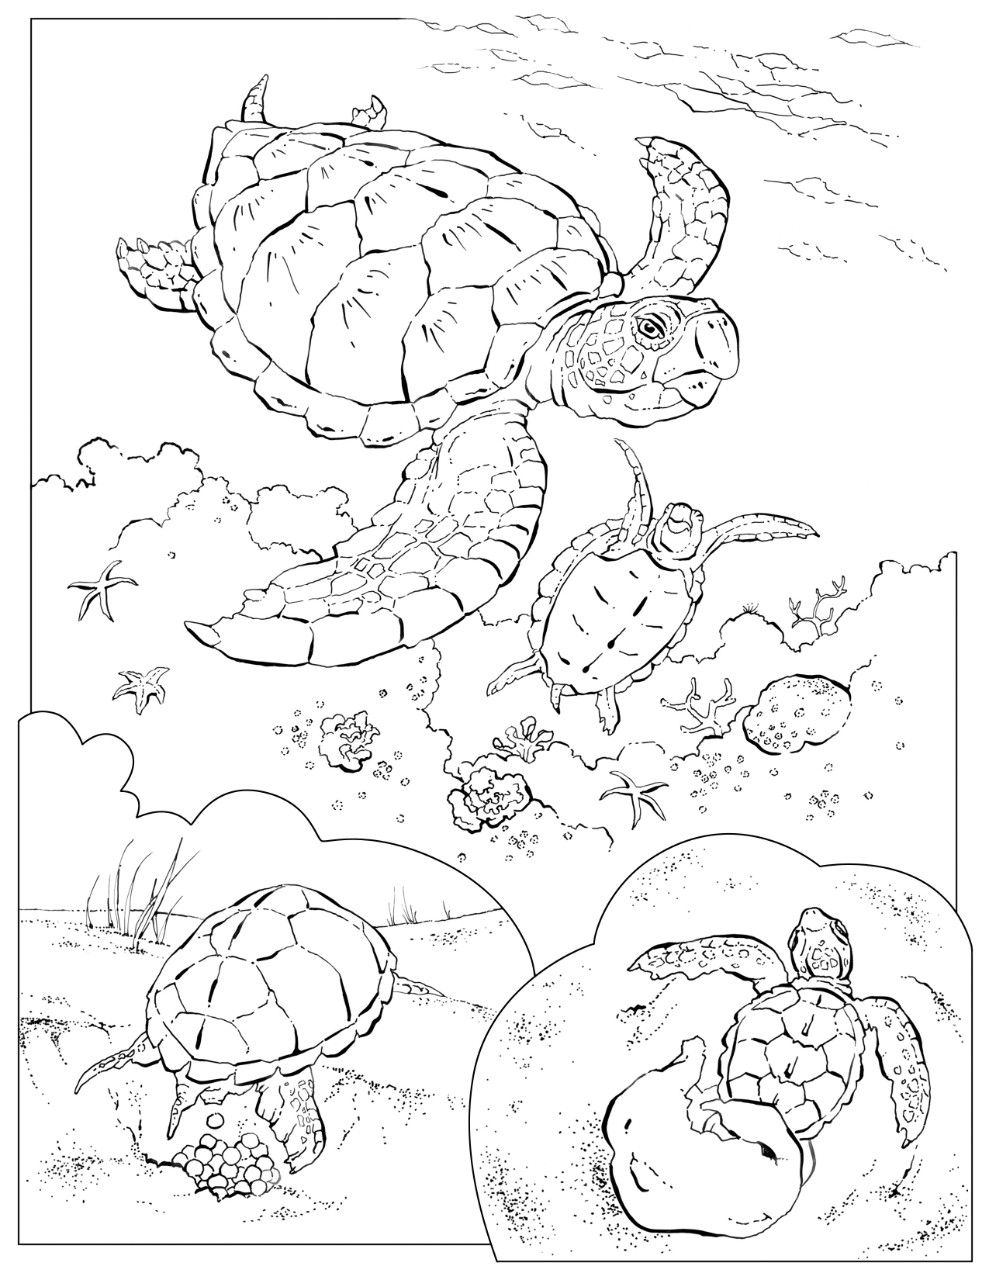 coloring book animals a to i sea turtles turtle and